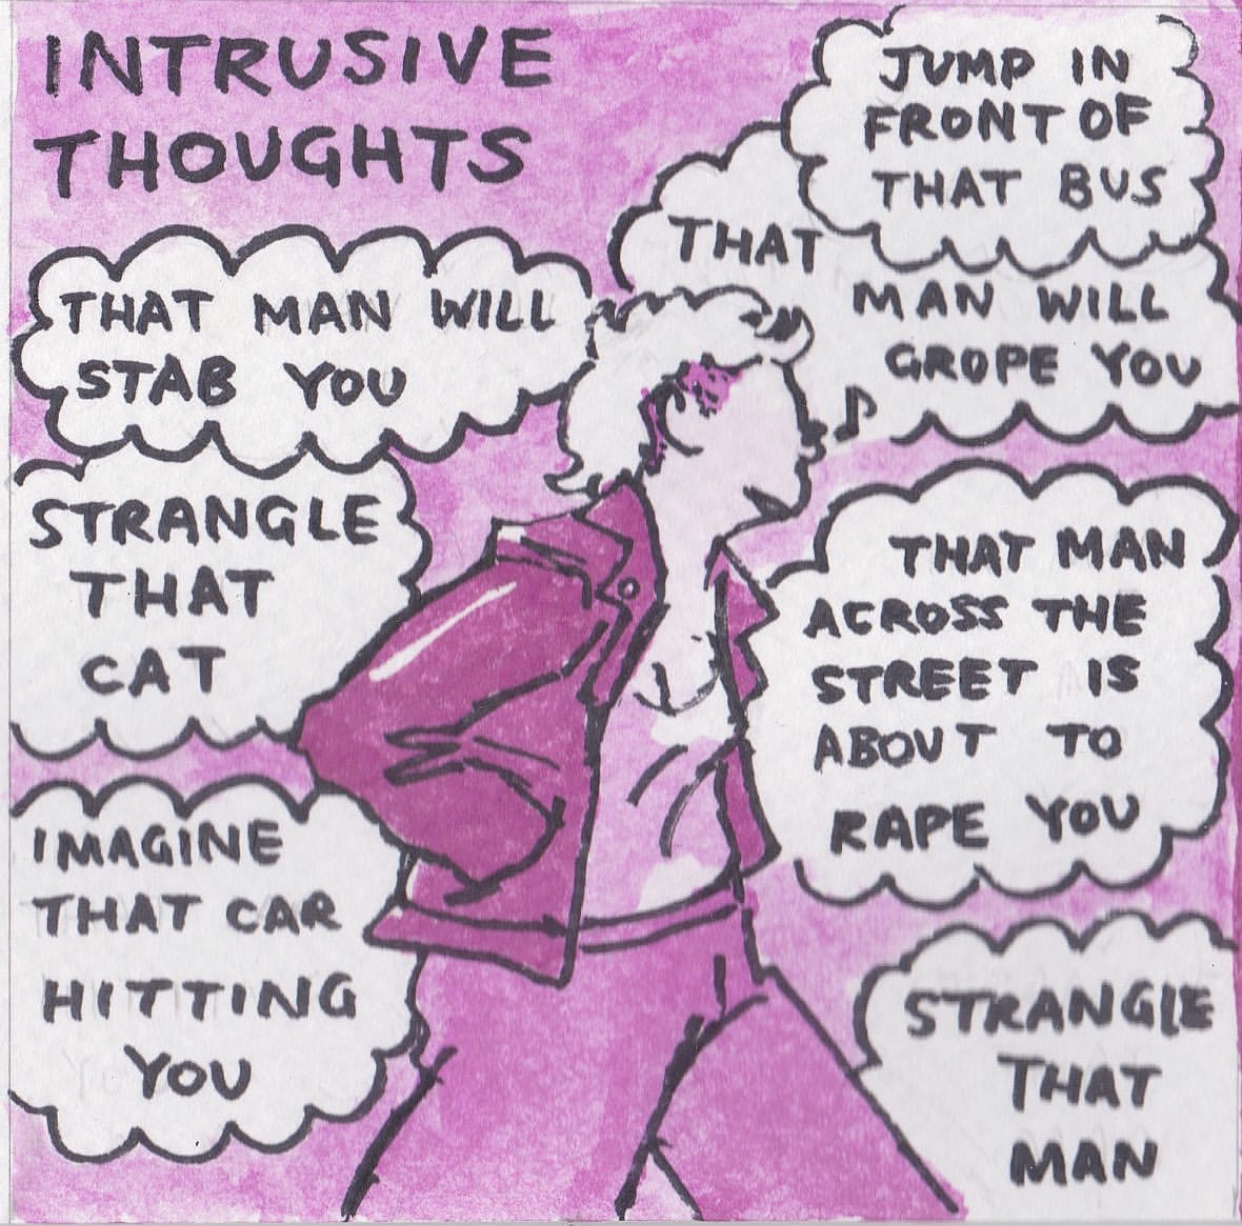 """Elyssa's illustrated comic of PTSD, drawn in ink and coloured in shades of pink and magenta watercolour paint. This image is titled """"Intrusive thoughts."""" In the centre, cartoon Elyssa is walking and whistling. She is wearing a leather jacket, vest top and jeans. She is surrounded by thought bubble clouds. In each one is a different intrusive thought: """"That man will stab you,"""" """"Strangle that cat,"""" """"Imagine that car hitting you,"""" """"Jump in front of that bus,"""" """"That man will grope you,"""" """"That man across the street is about to rape you,"""" """"Strangle that man."""""""